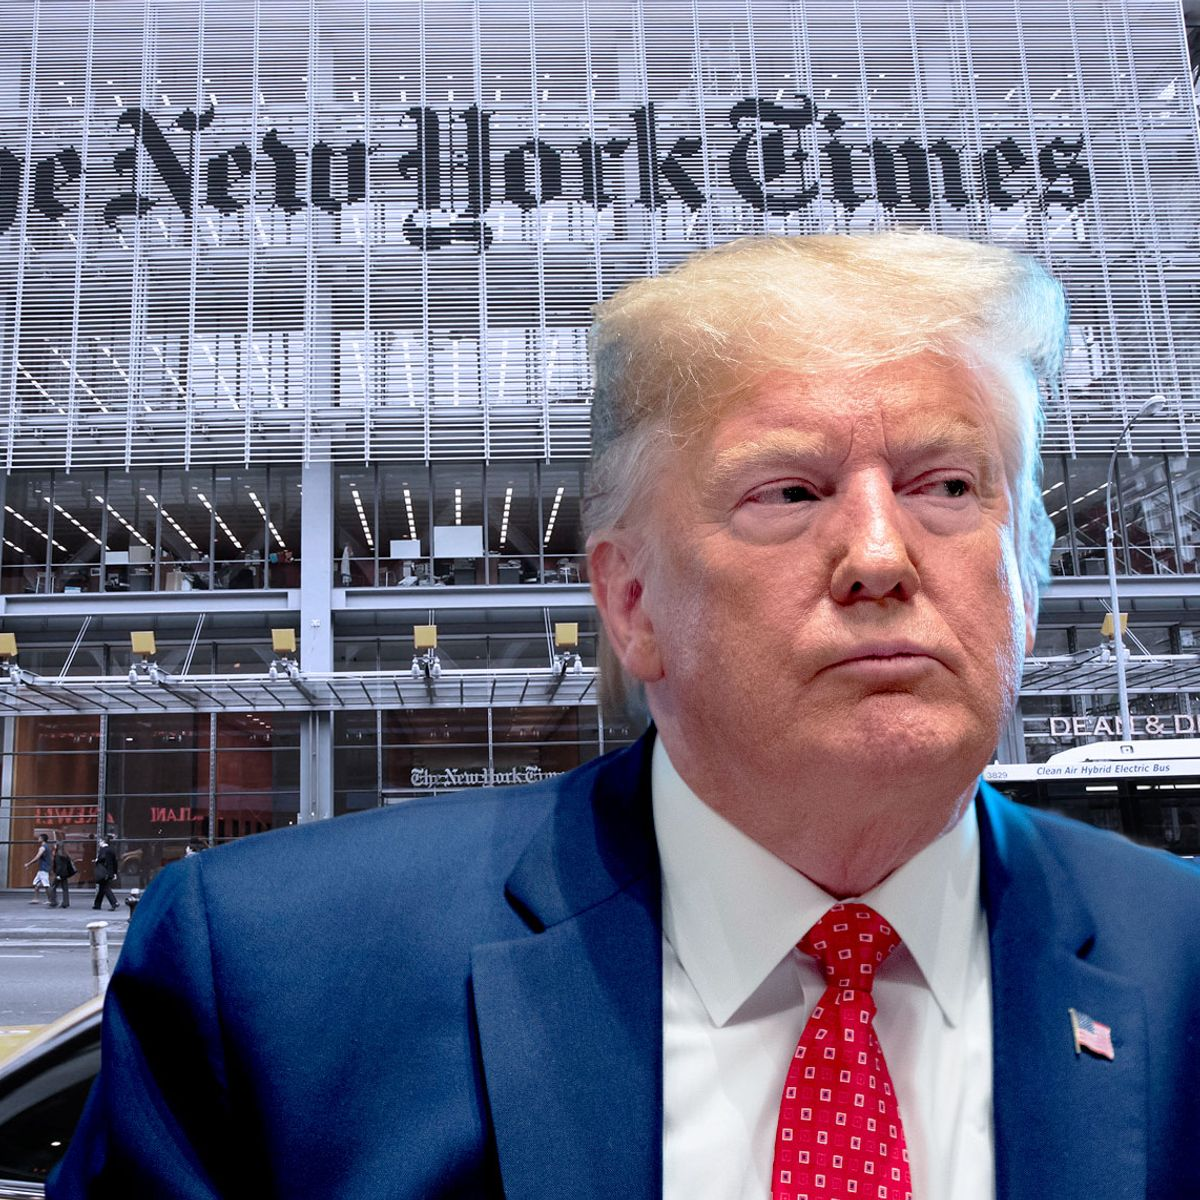 Fired from The New York Times over Trump